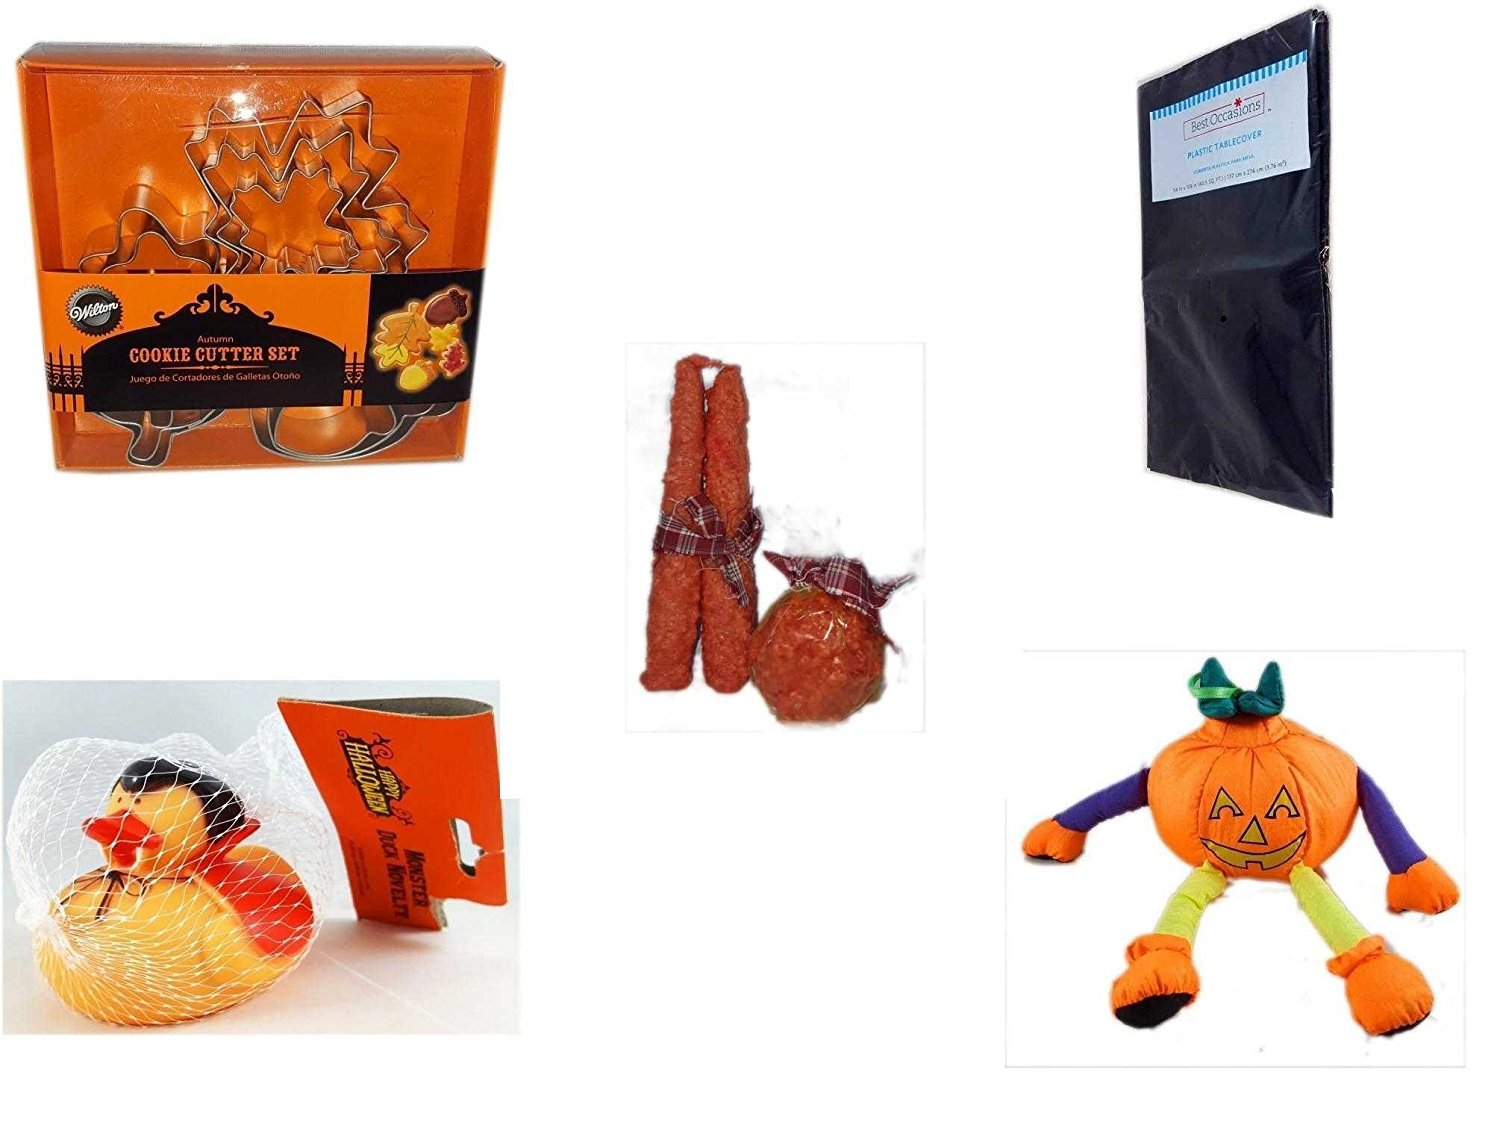 Halloween Fun Gift Bundle [5 piece] - Wilton Autumn 8-Piece Cookie Cutter Set - Black Plastic Table Cover Halloween - Autumn Orange-spice Candles Set of 3 - Happy Halloween Monster Duck Novelty -Vam